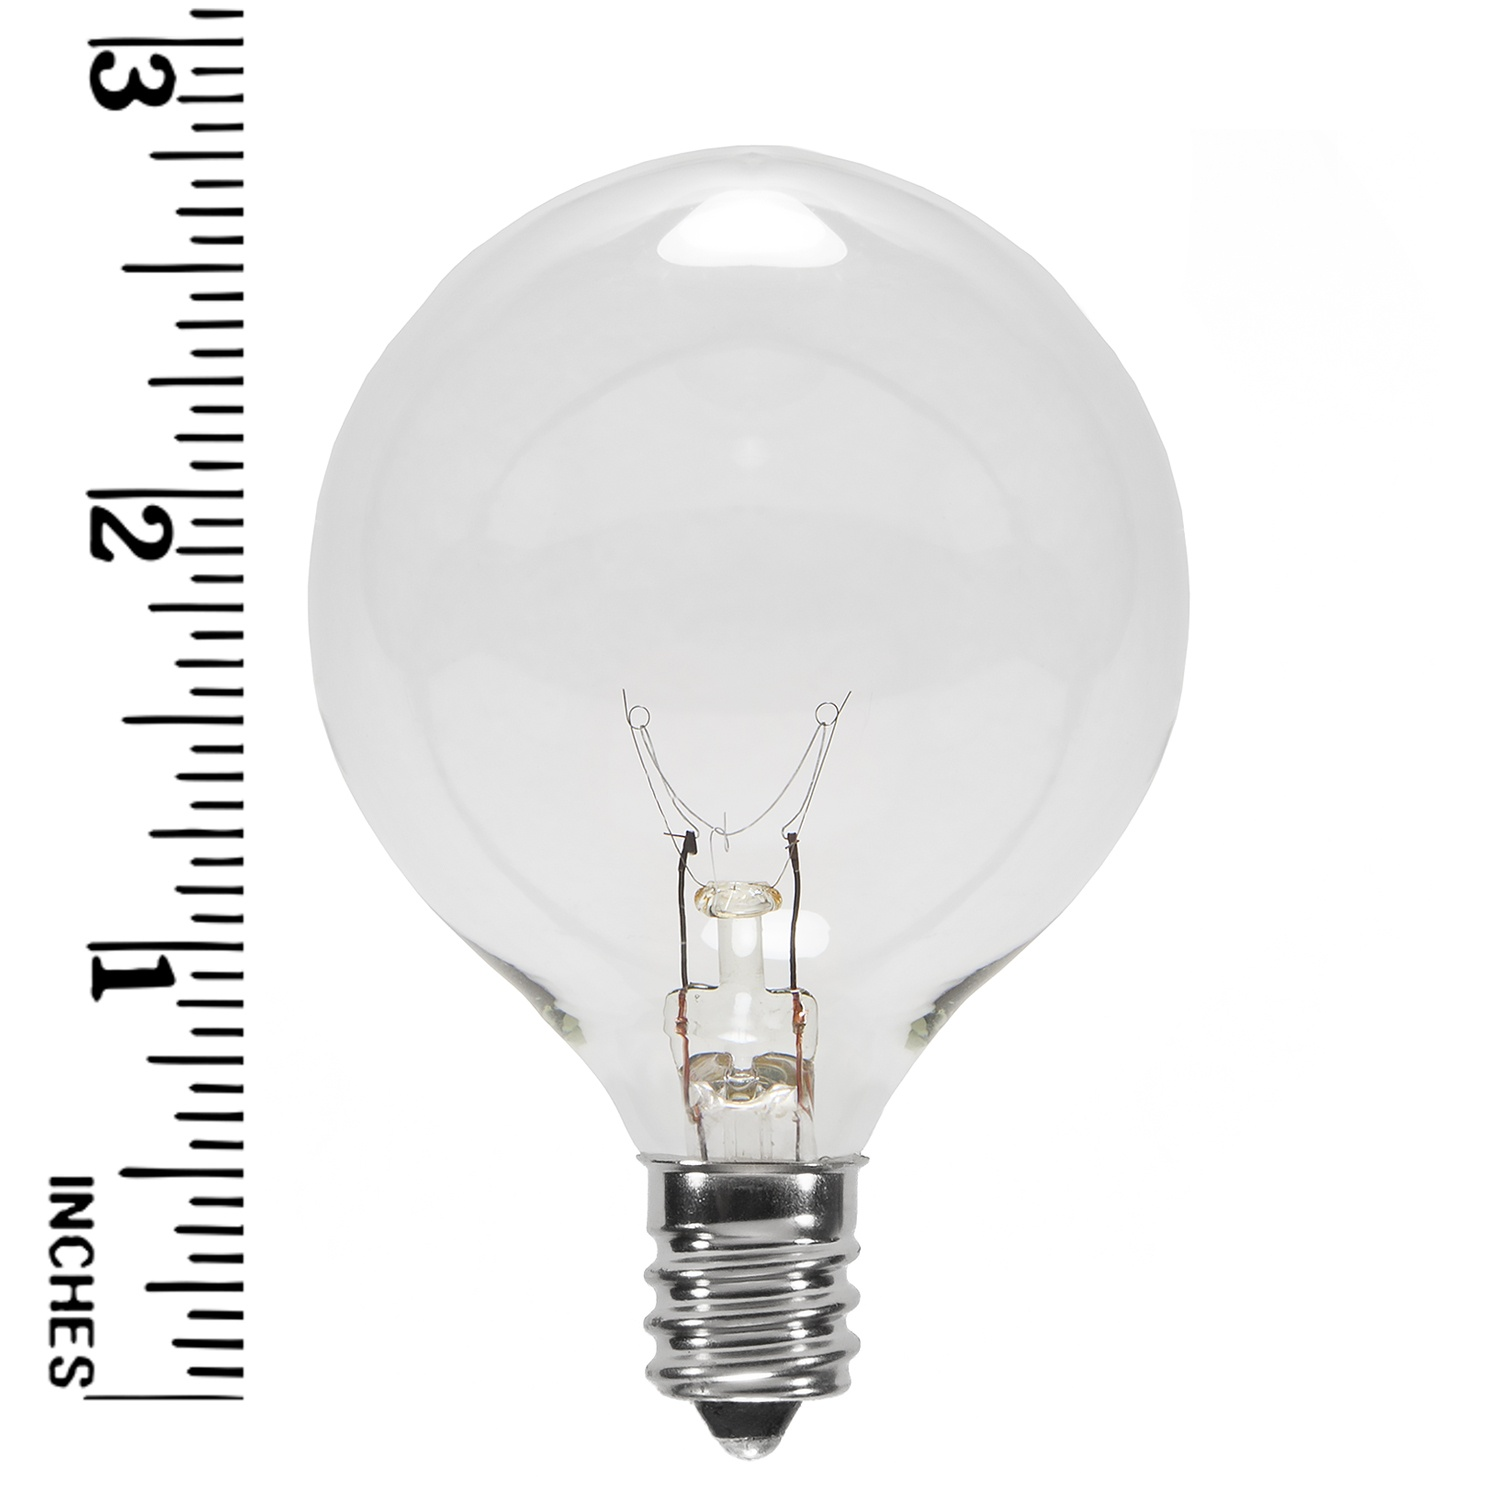 G50 bulb measurement